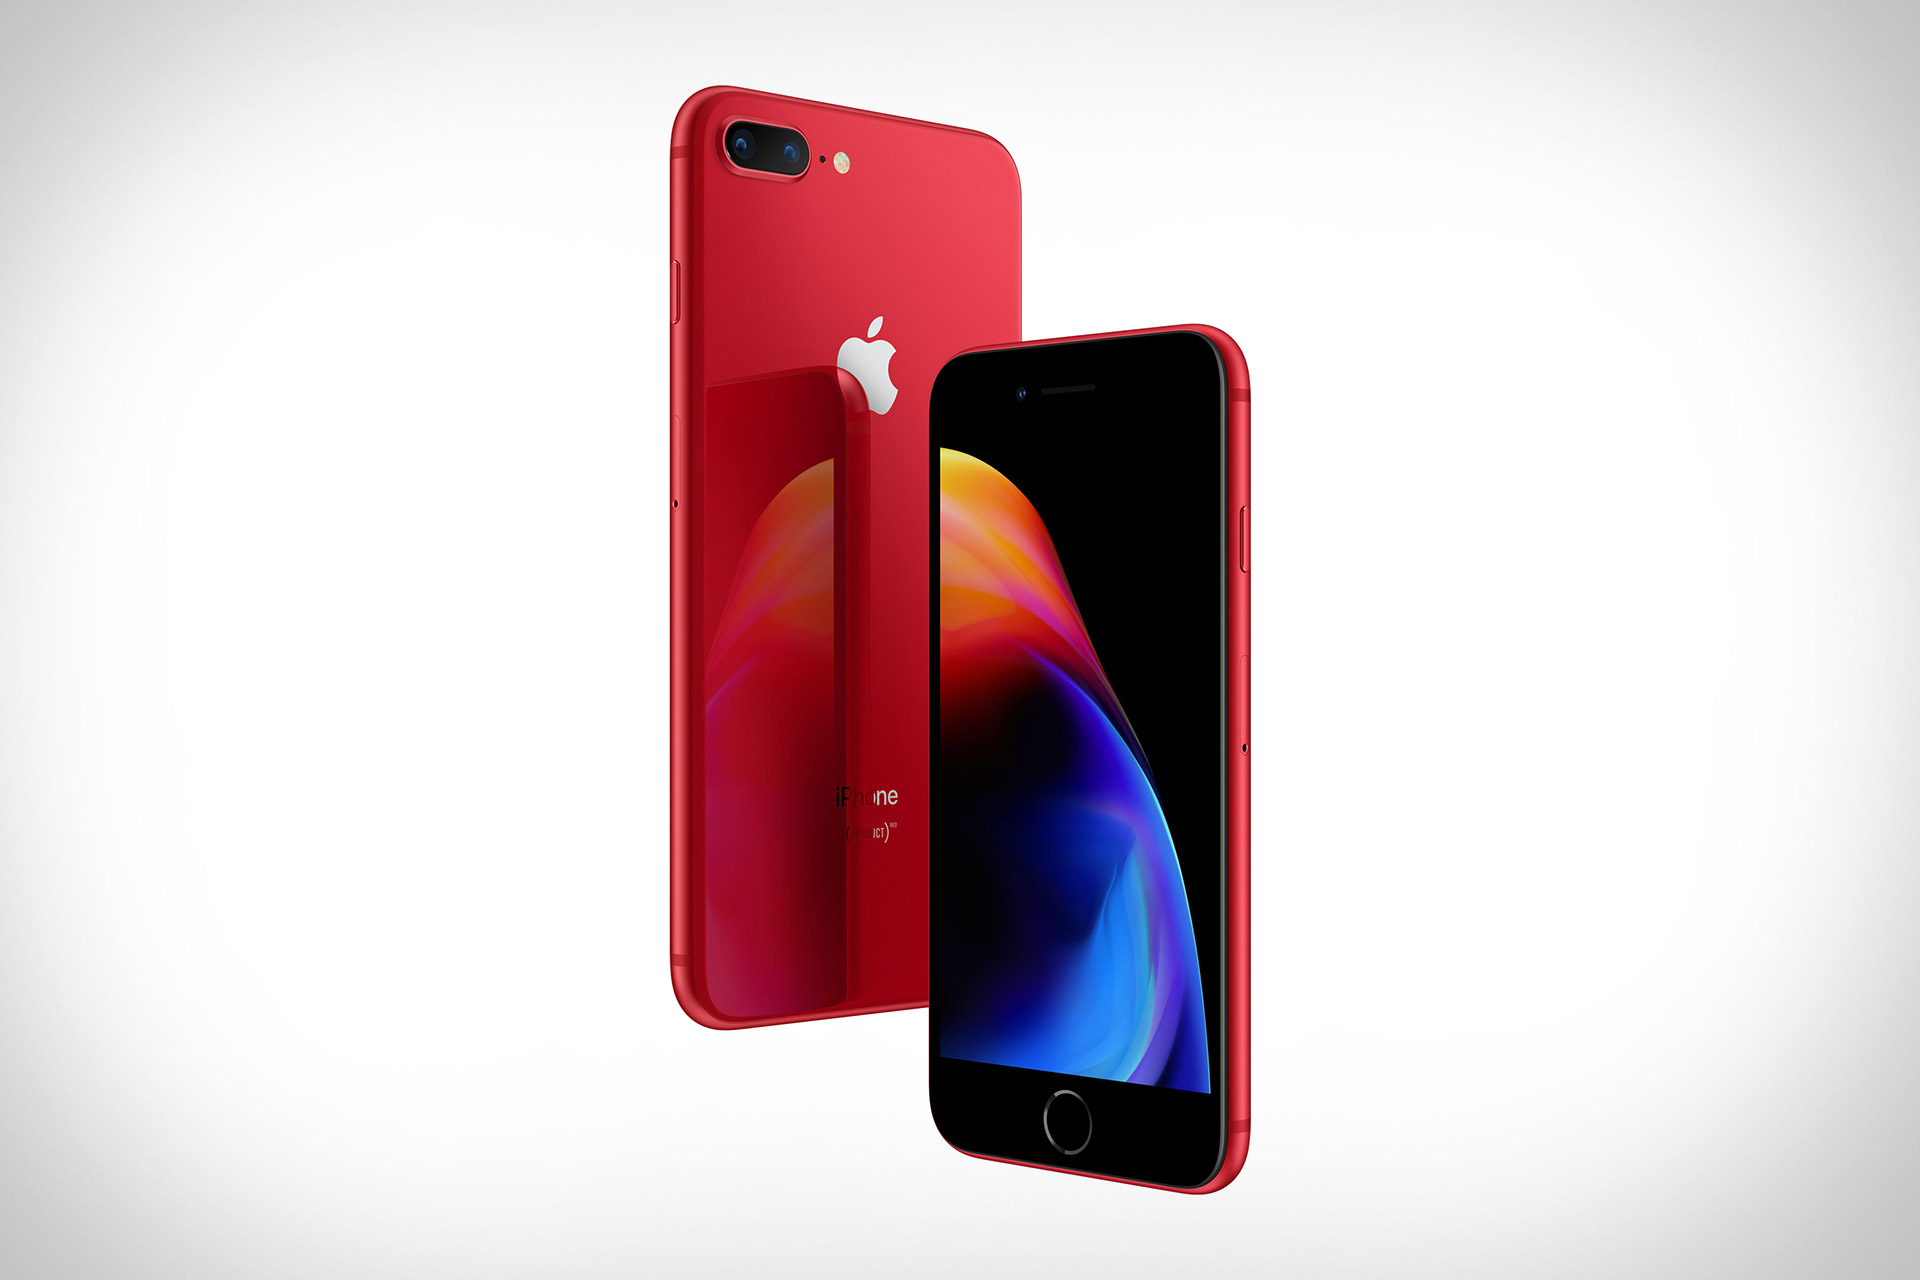 Apple Product Red Iphone 8 Uncrate